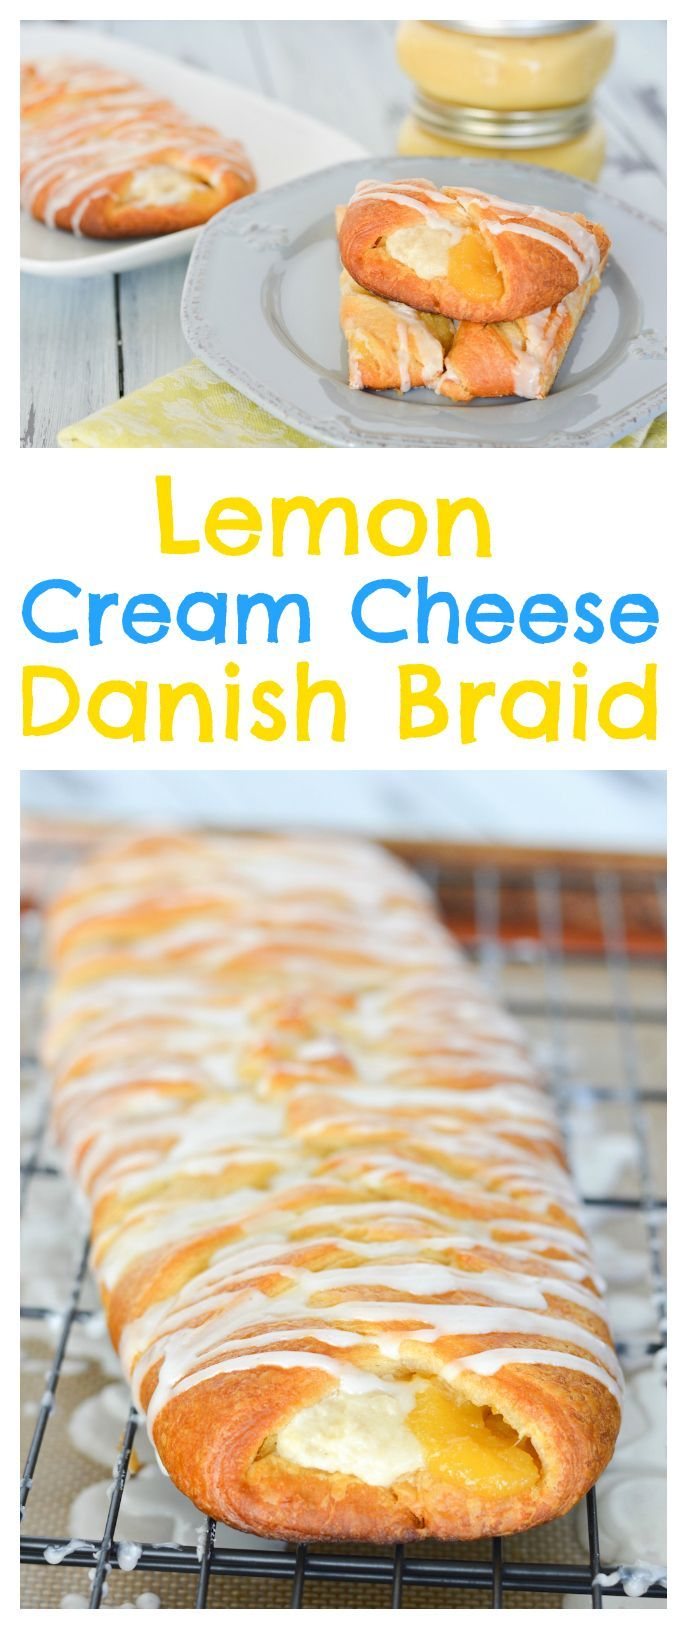 This Lemon Cream Cheese Danish Braid is easy but impressive, and perfect for…